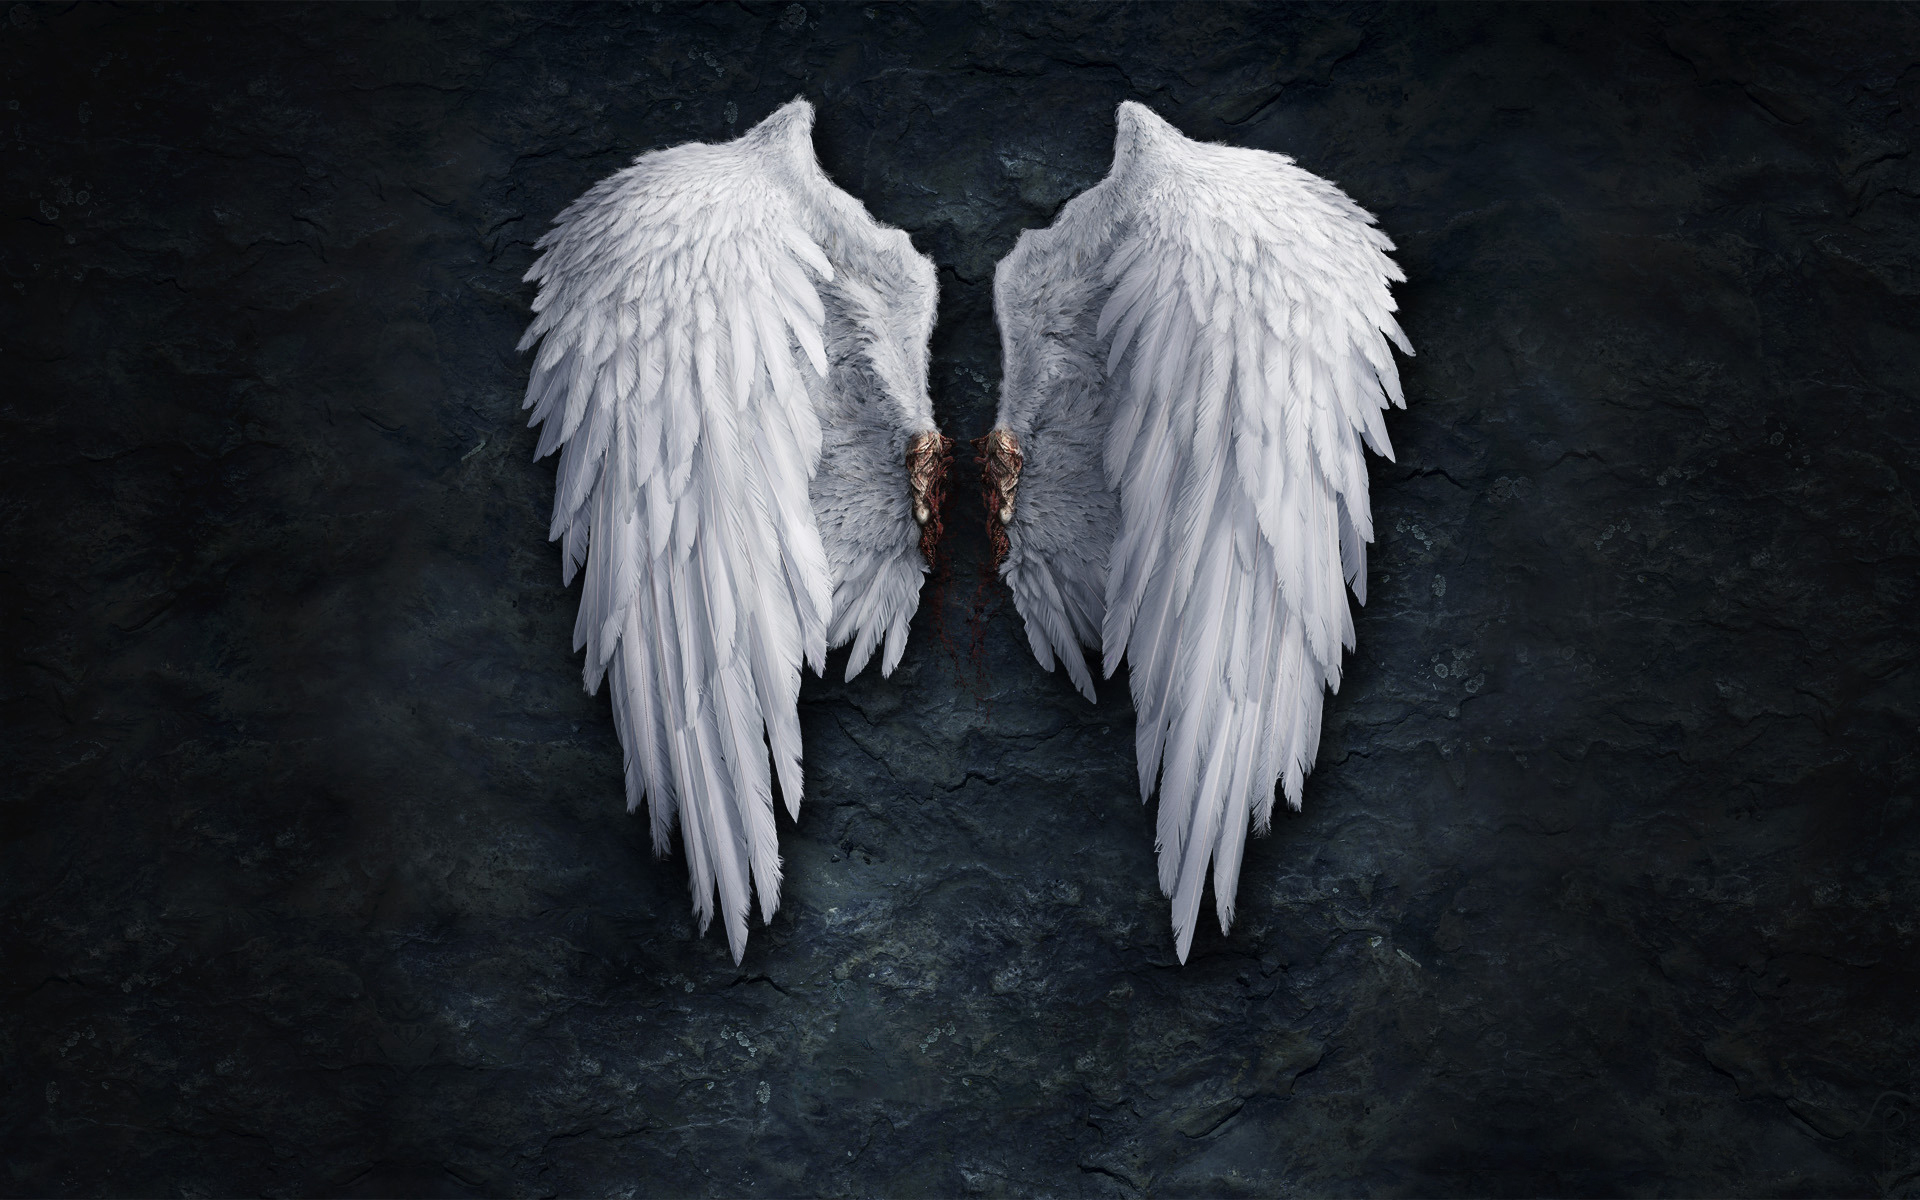 Angels wings blood stones aion